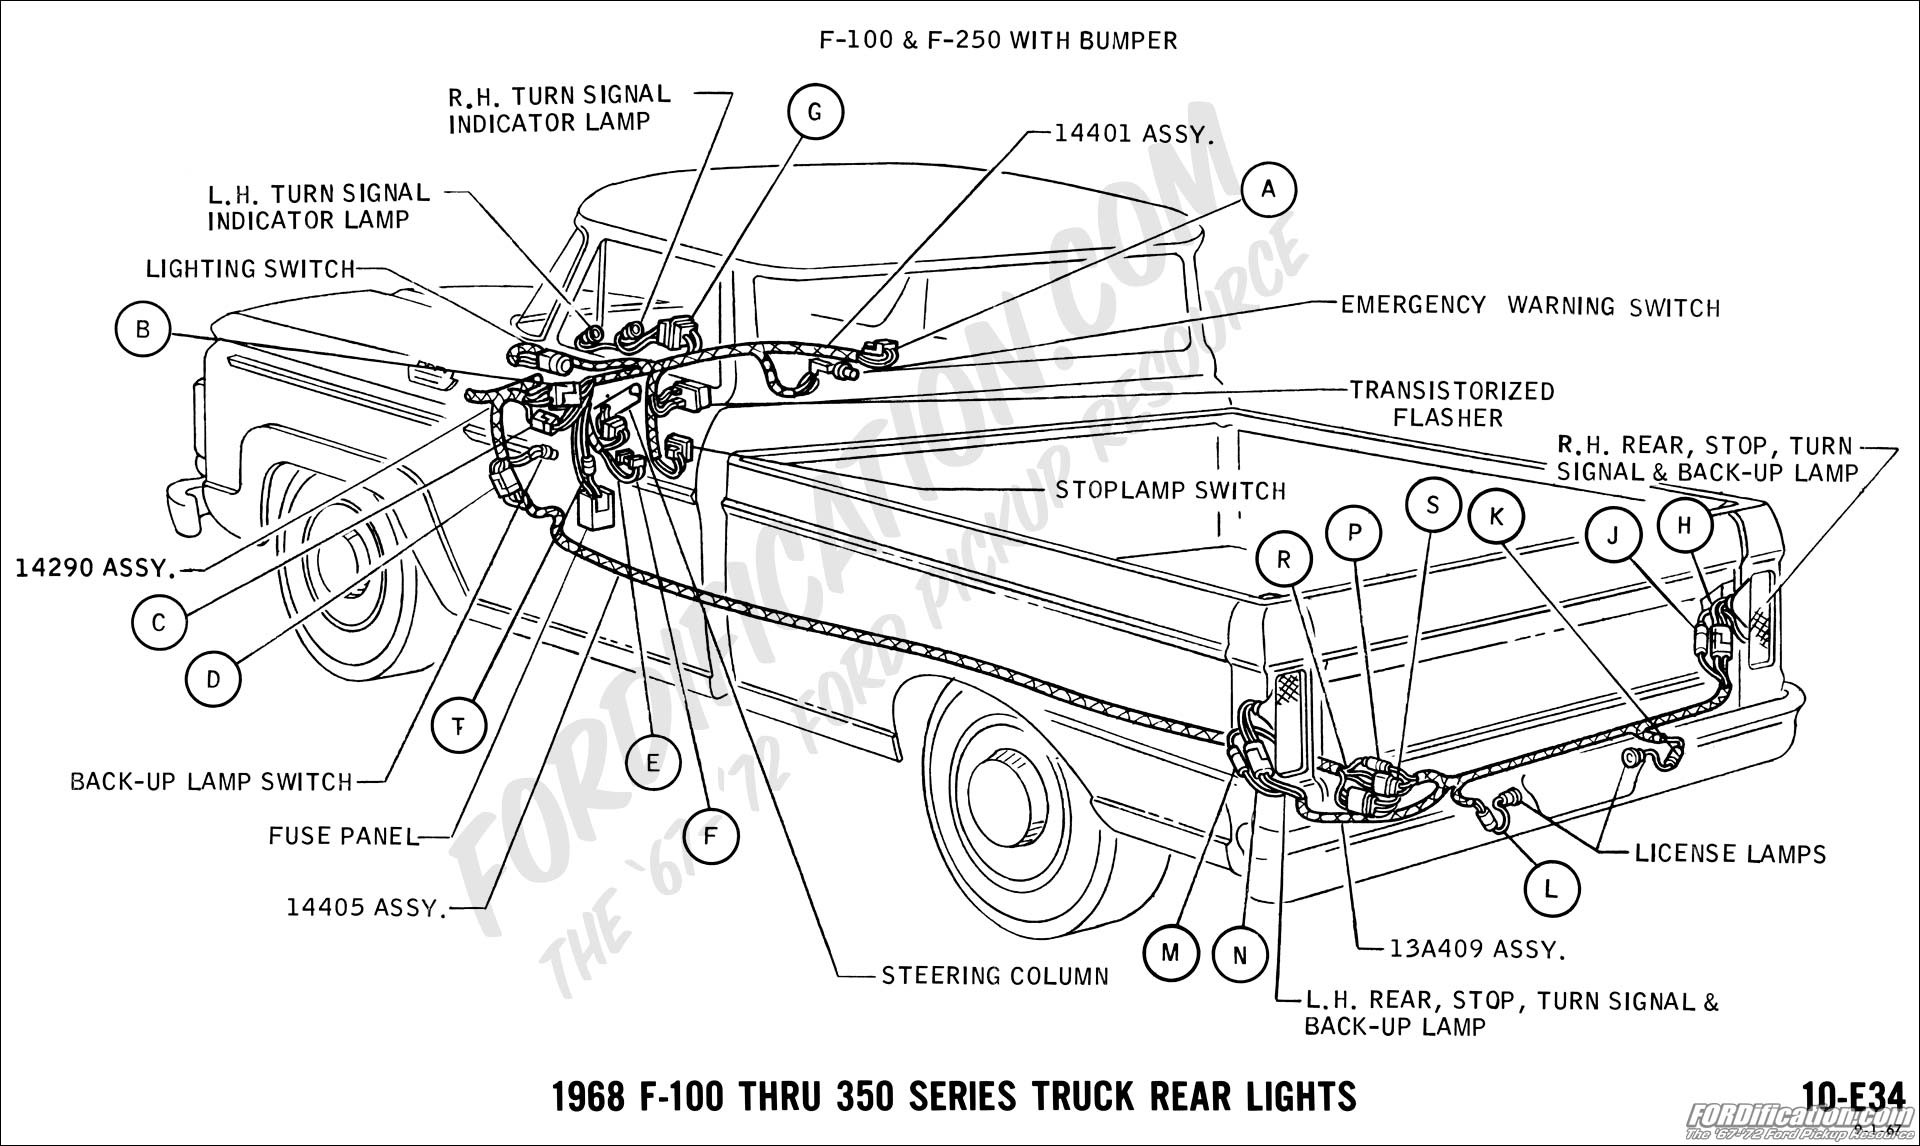 Wiring 2005 Ford Escape Parts Library 2001 Explorer Steering Wheel Diagram Wire Kmestc My V6 Engine